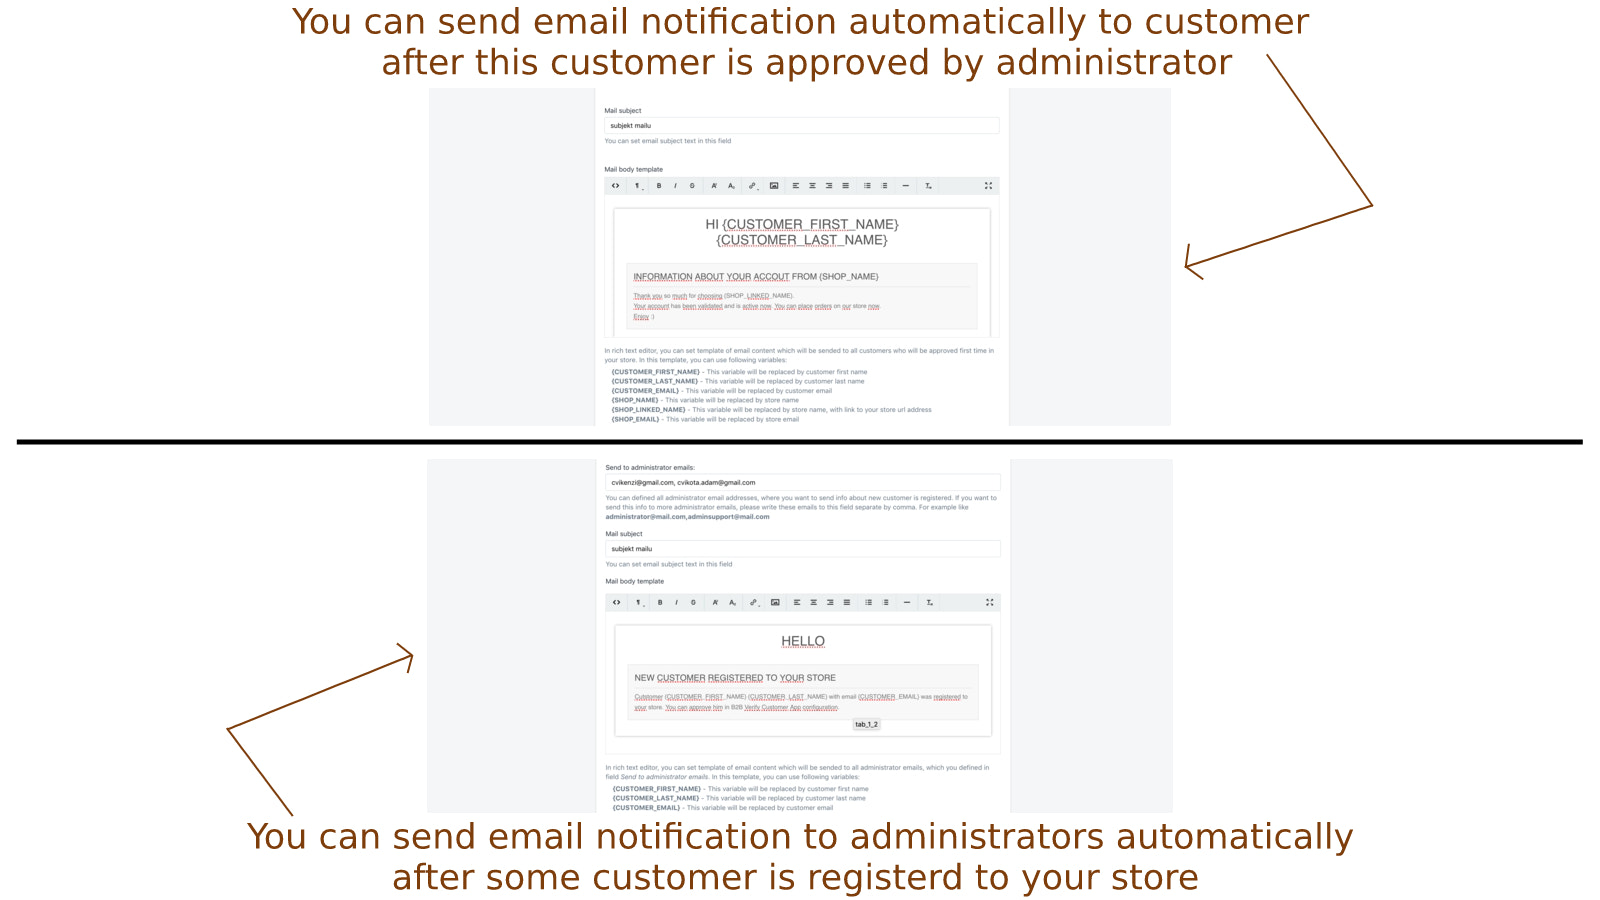 You can send email notifications to customers or administrators